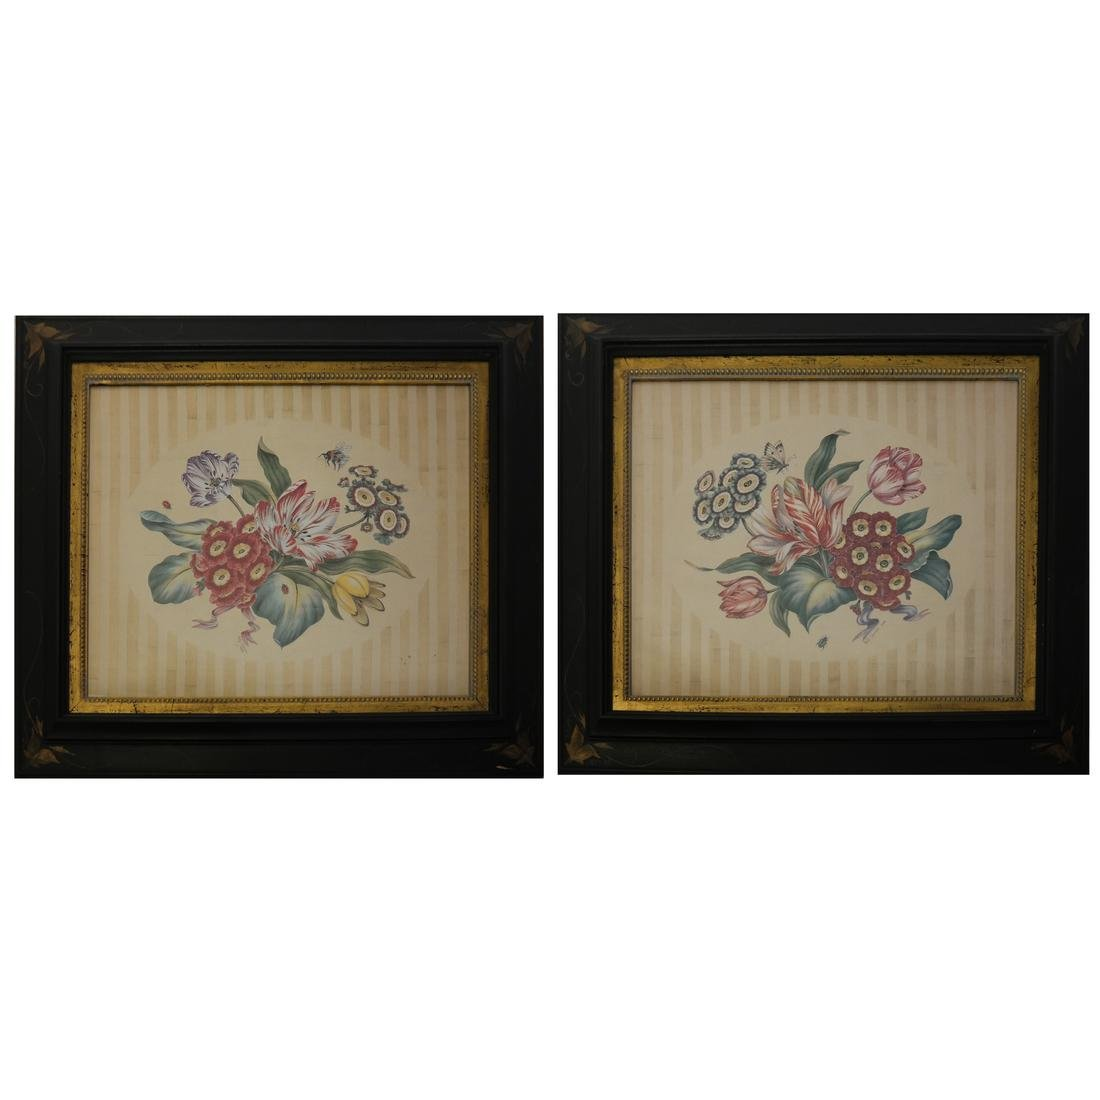 Two Floral Still Life Prints